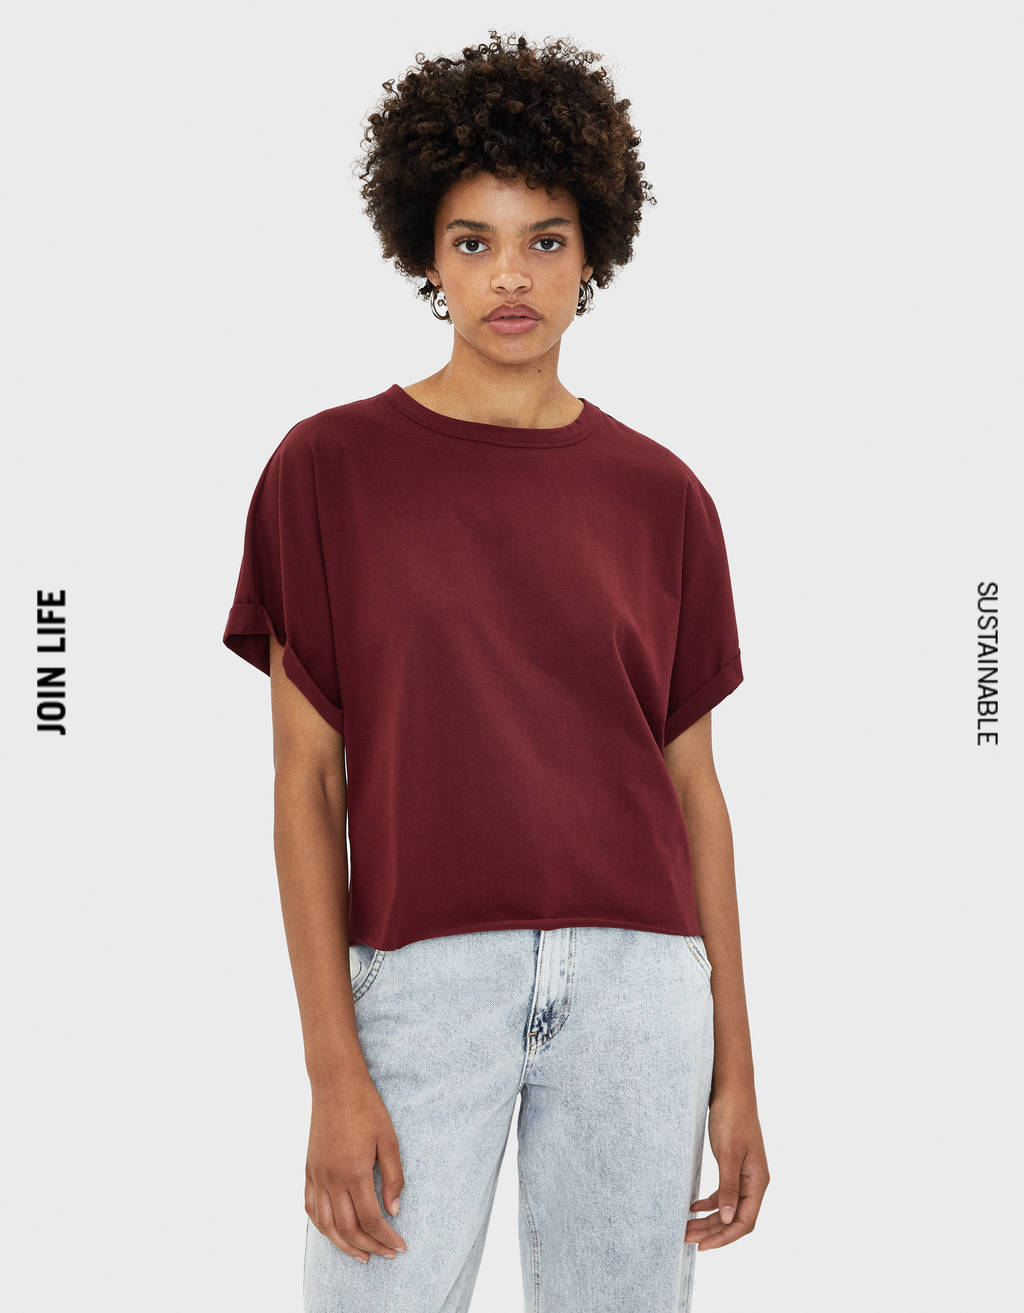 T-shirt with back knot